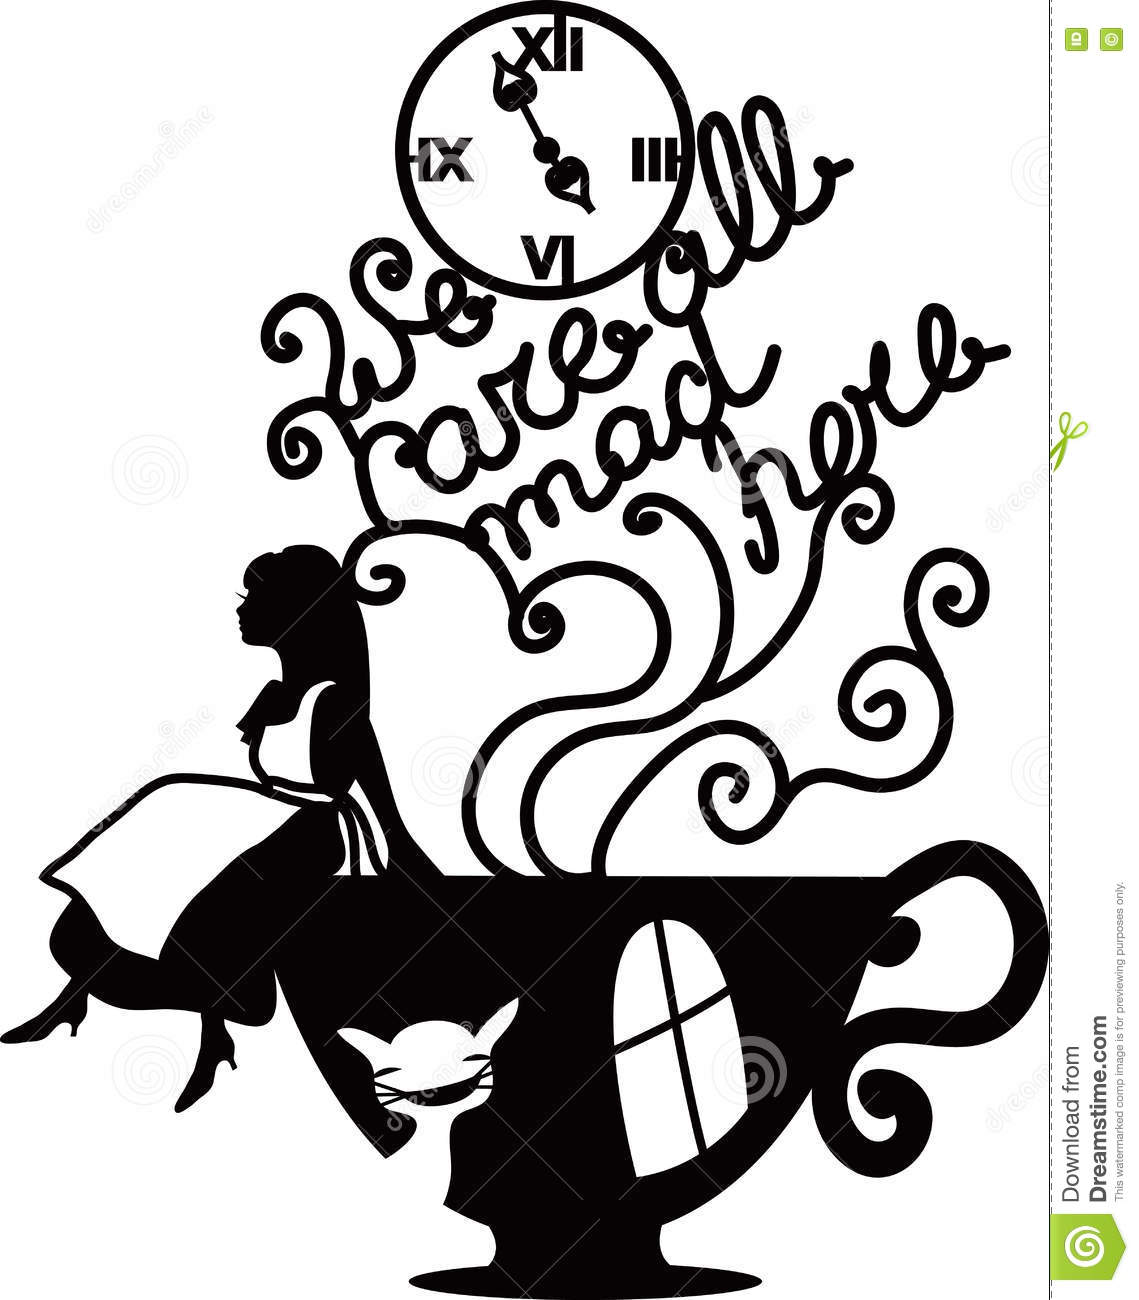 Alice in wonderland clipart black and white 1 » Clipart Station.